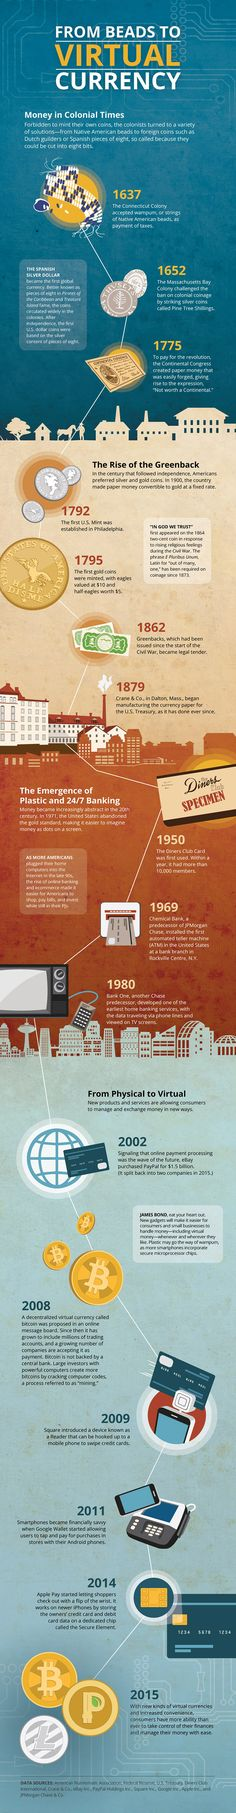 071915-history-of-money-graphic_secondary